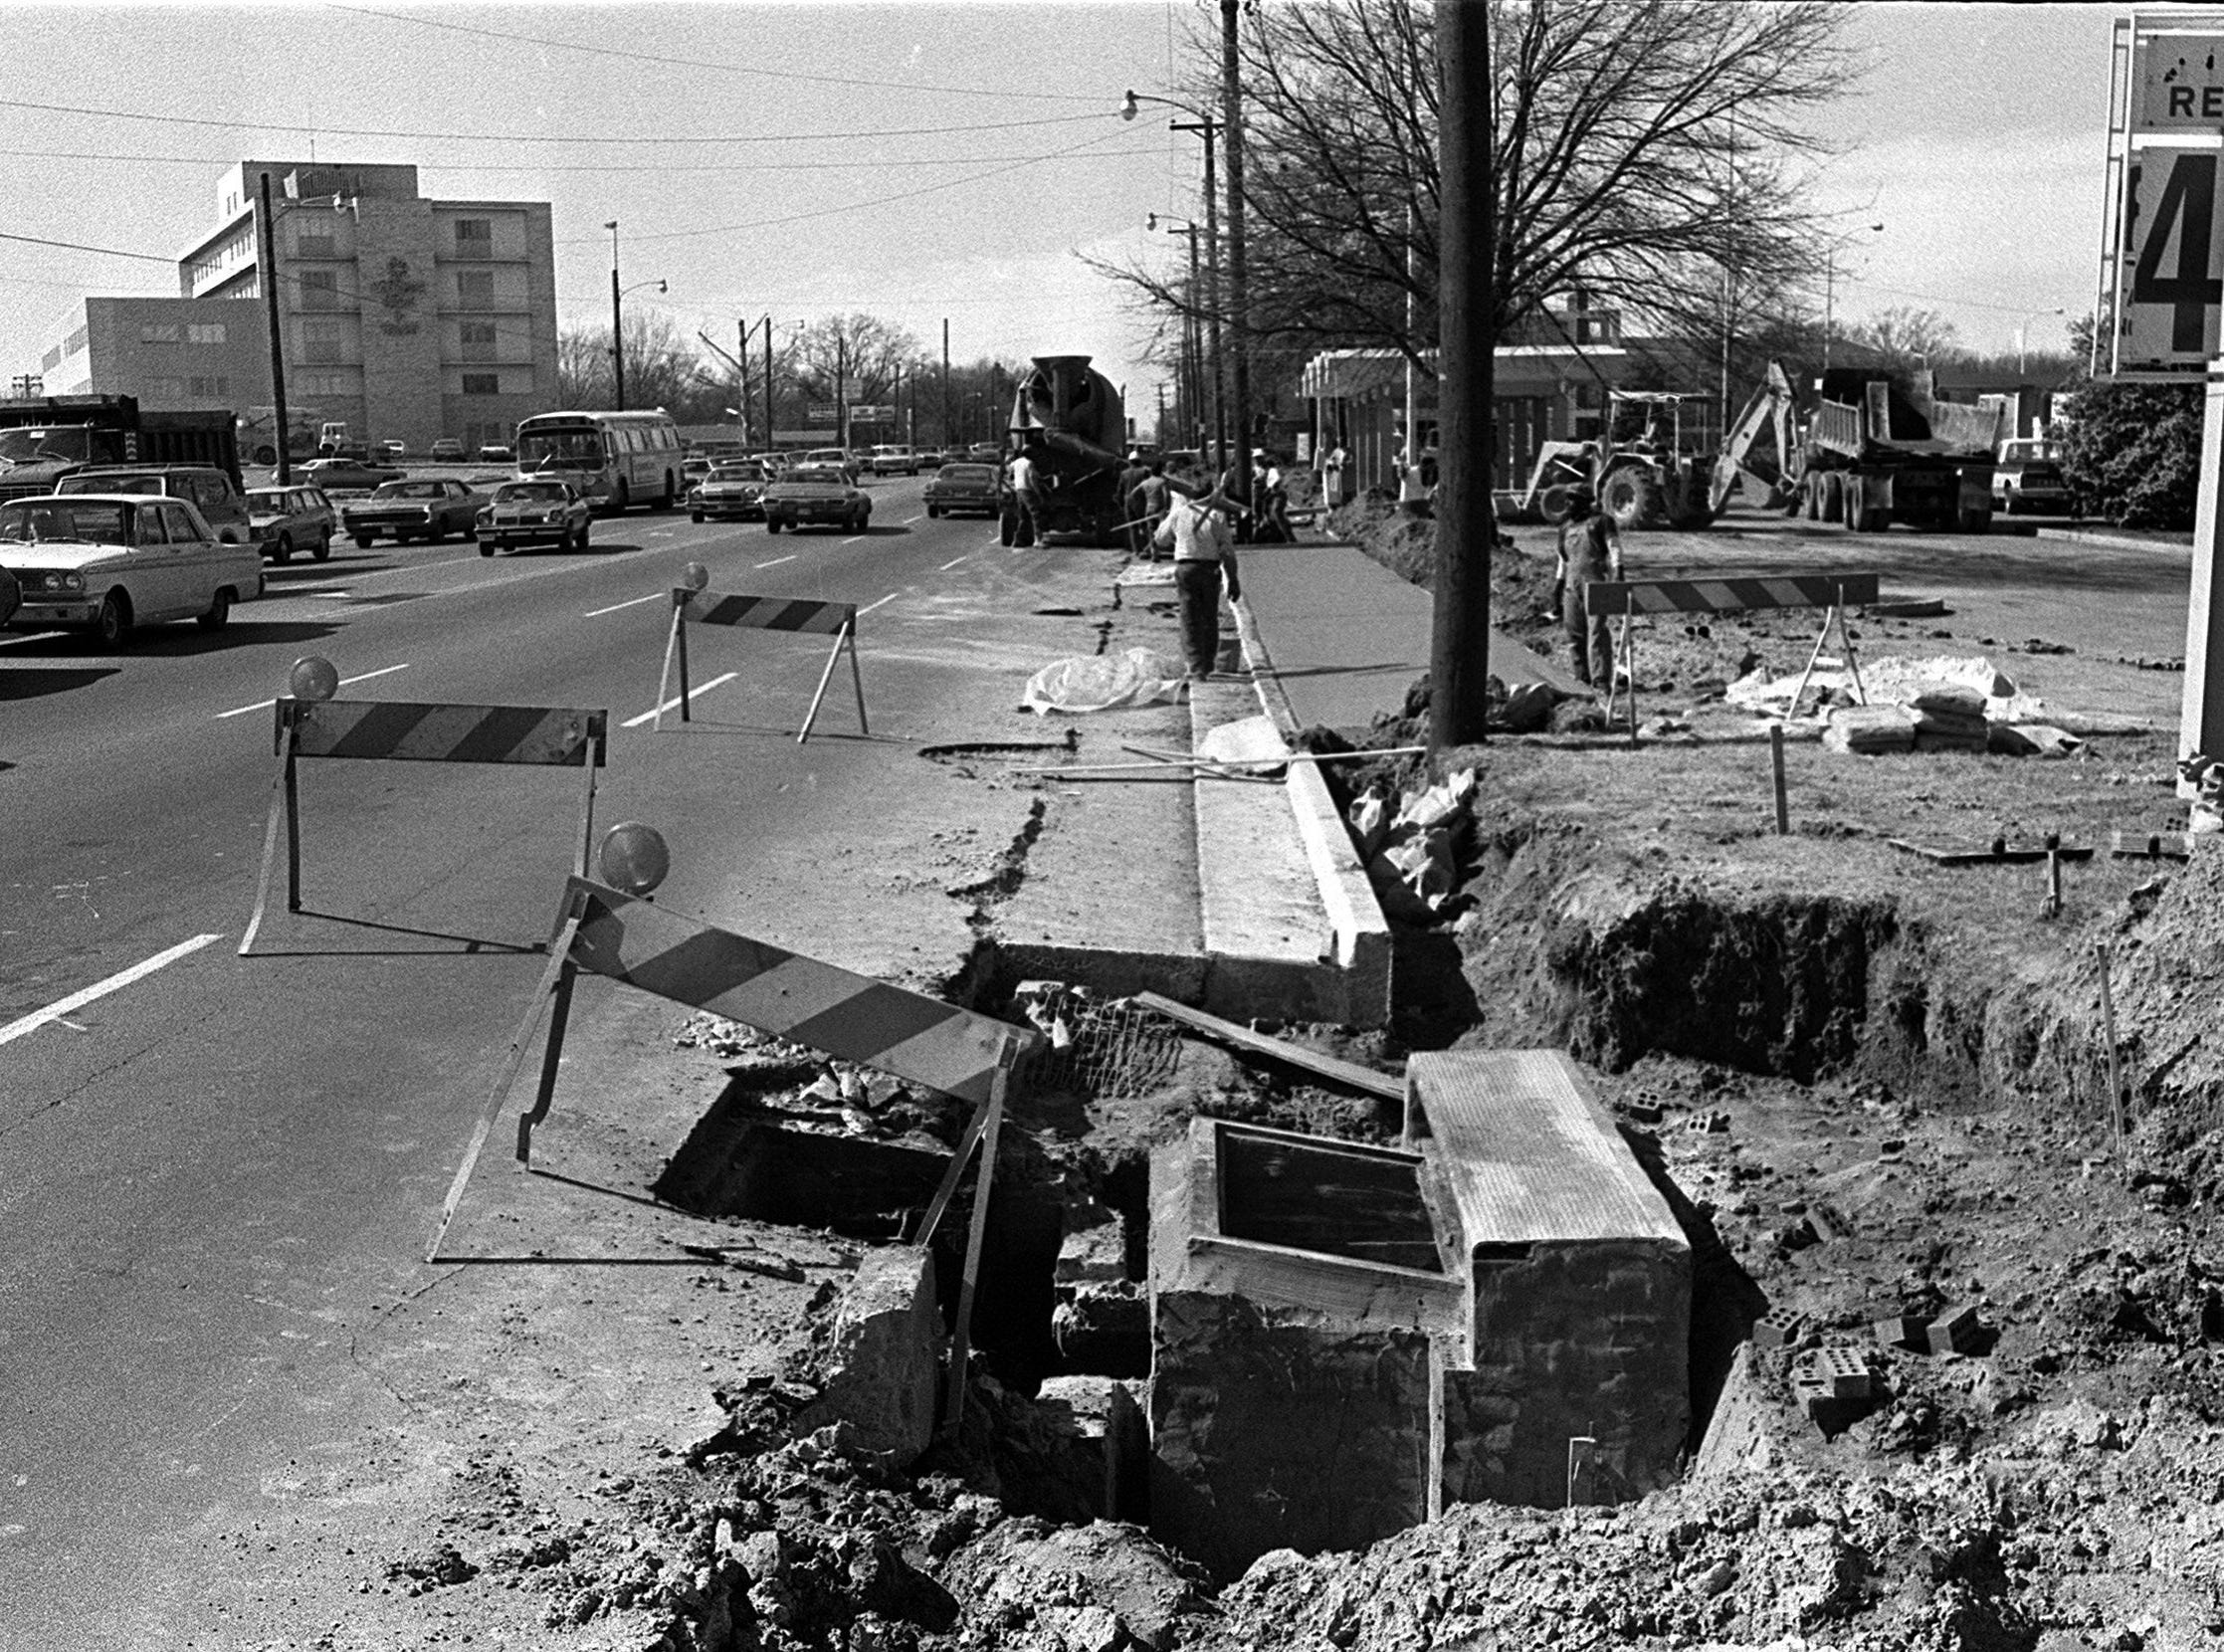 Curb and gutter work is being completed as Poplar Avenue is widened west of Perkins Extended on 28 Feb 1975. This photograph, looking to the west near Perkins Extended indicates that Sears, Roebuck and Company is selling regular gasoline for 48.9 cents per gallon.